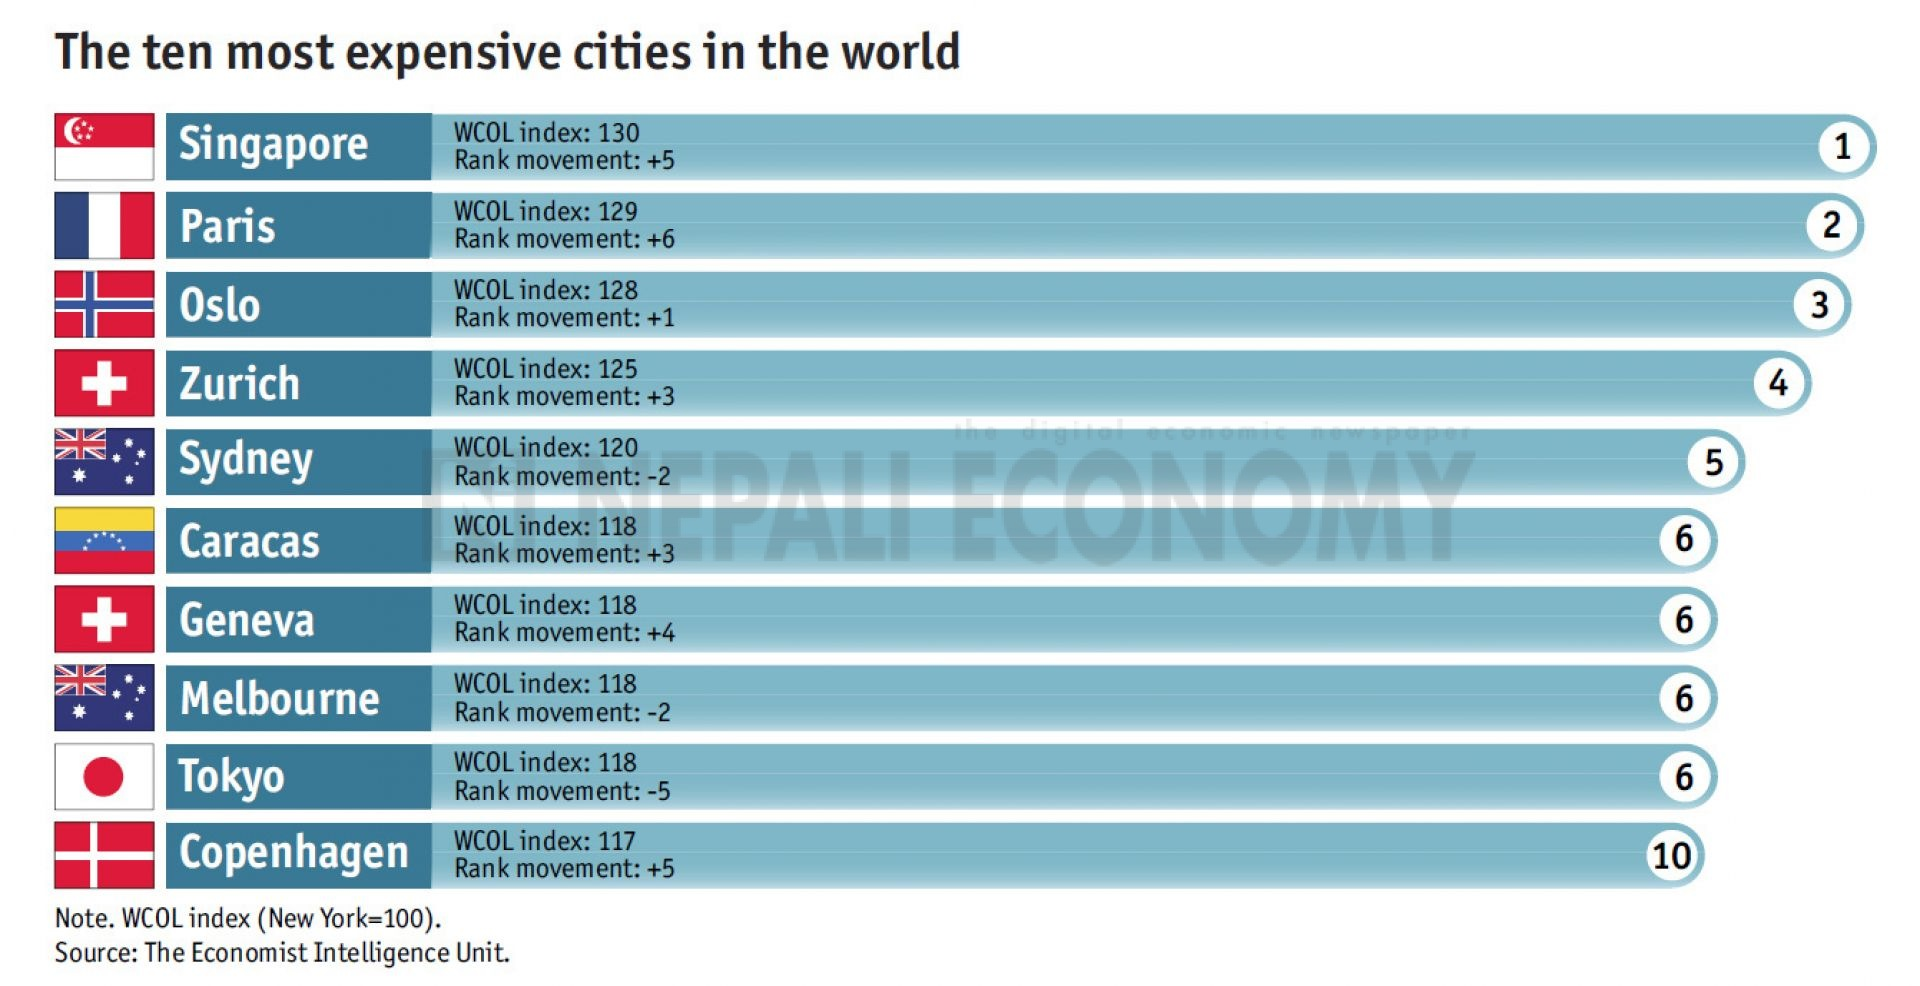 Kathmandu most expensive South Asian city, though one of the cheapest compared to New York